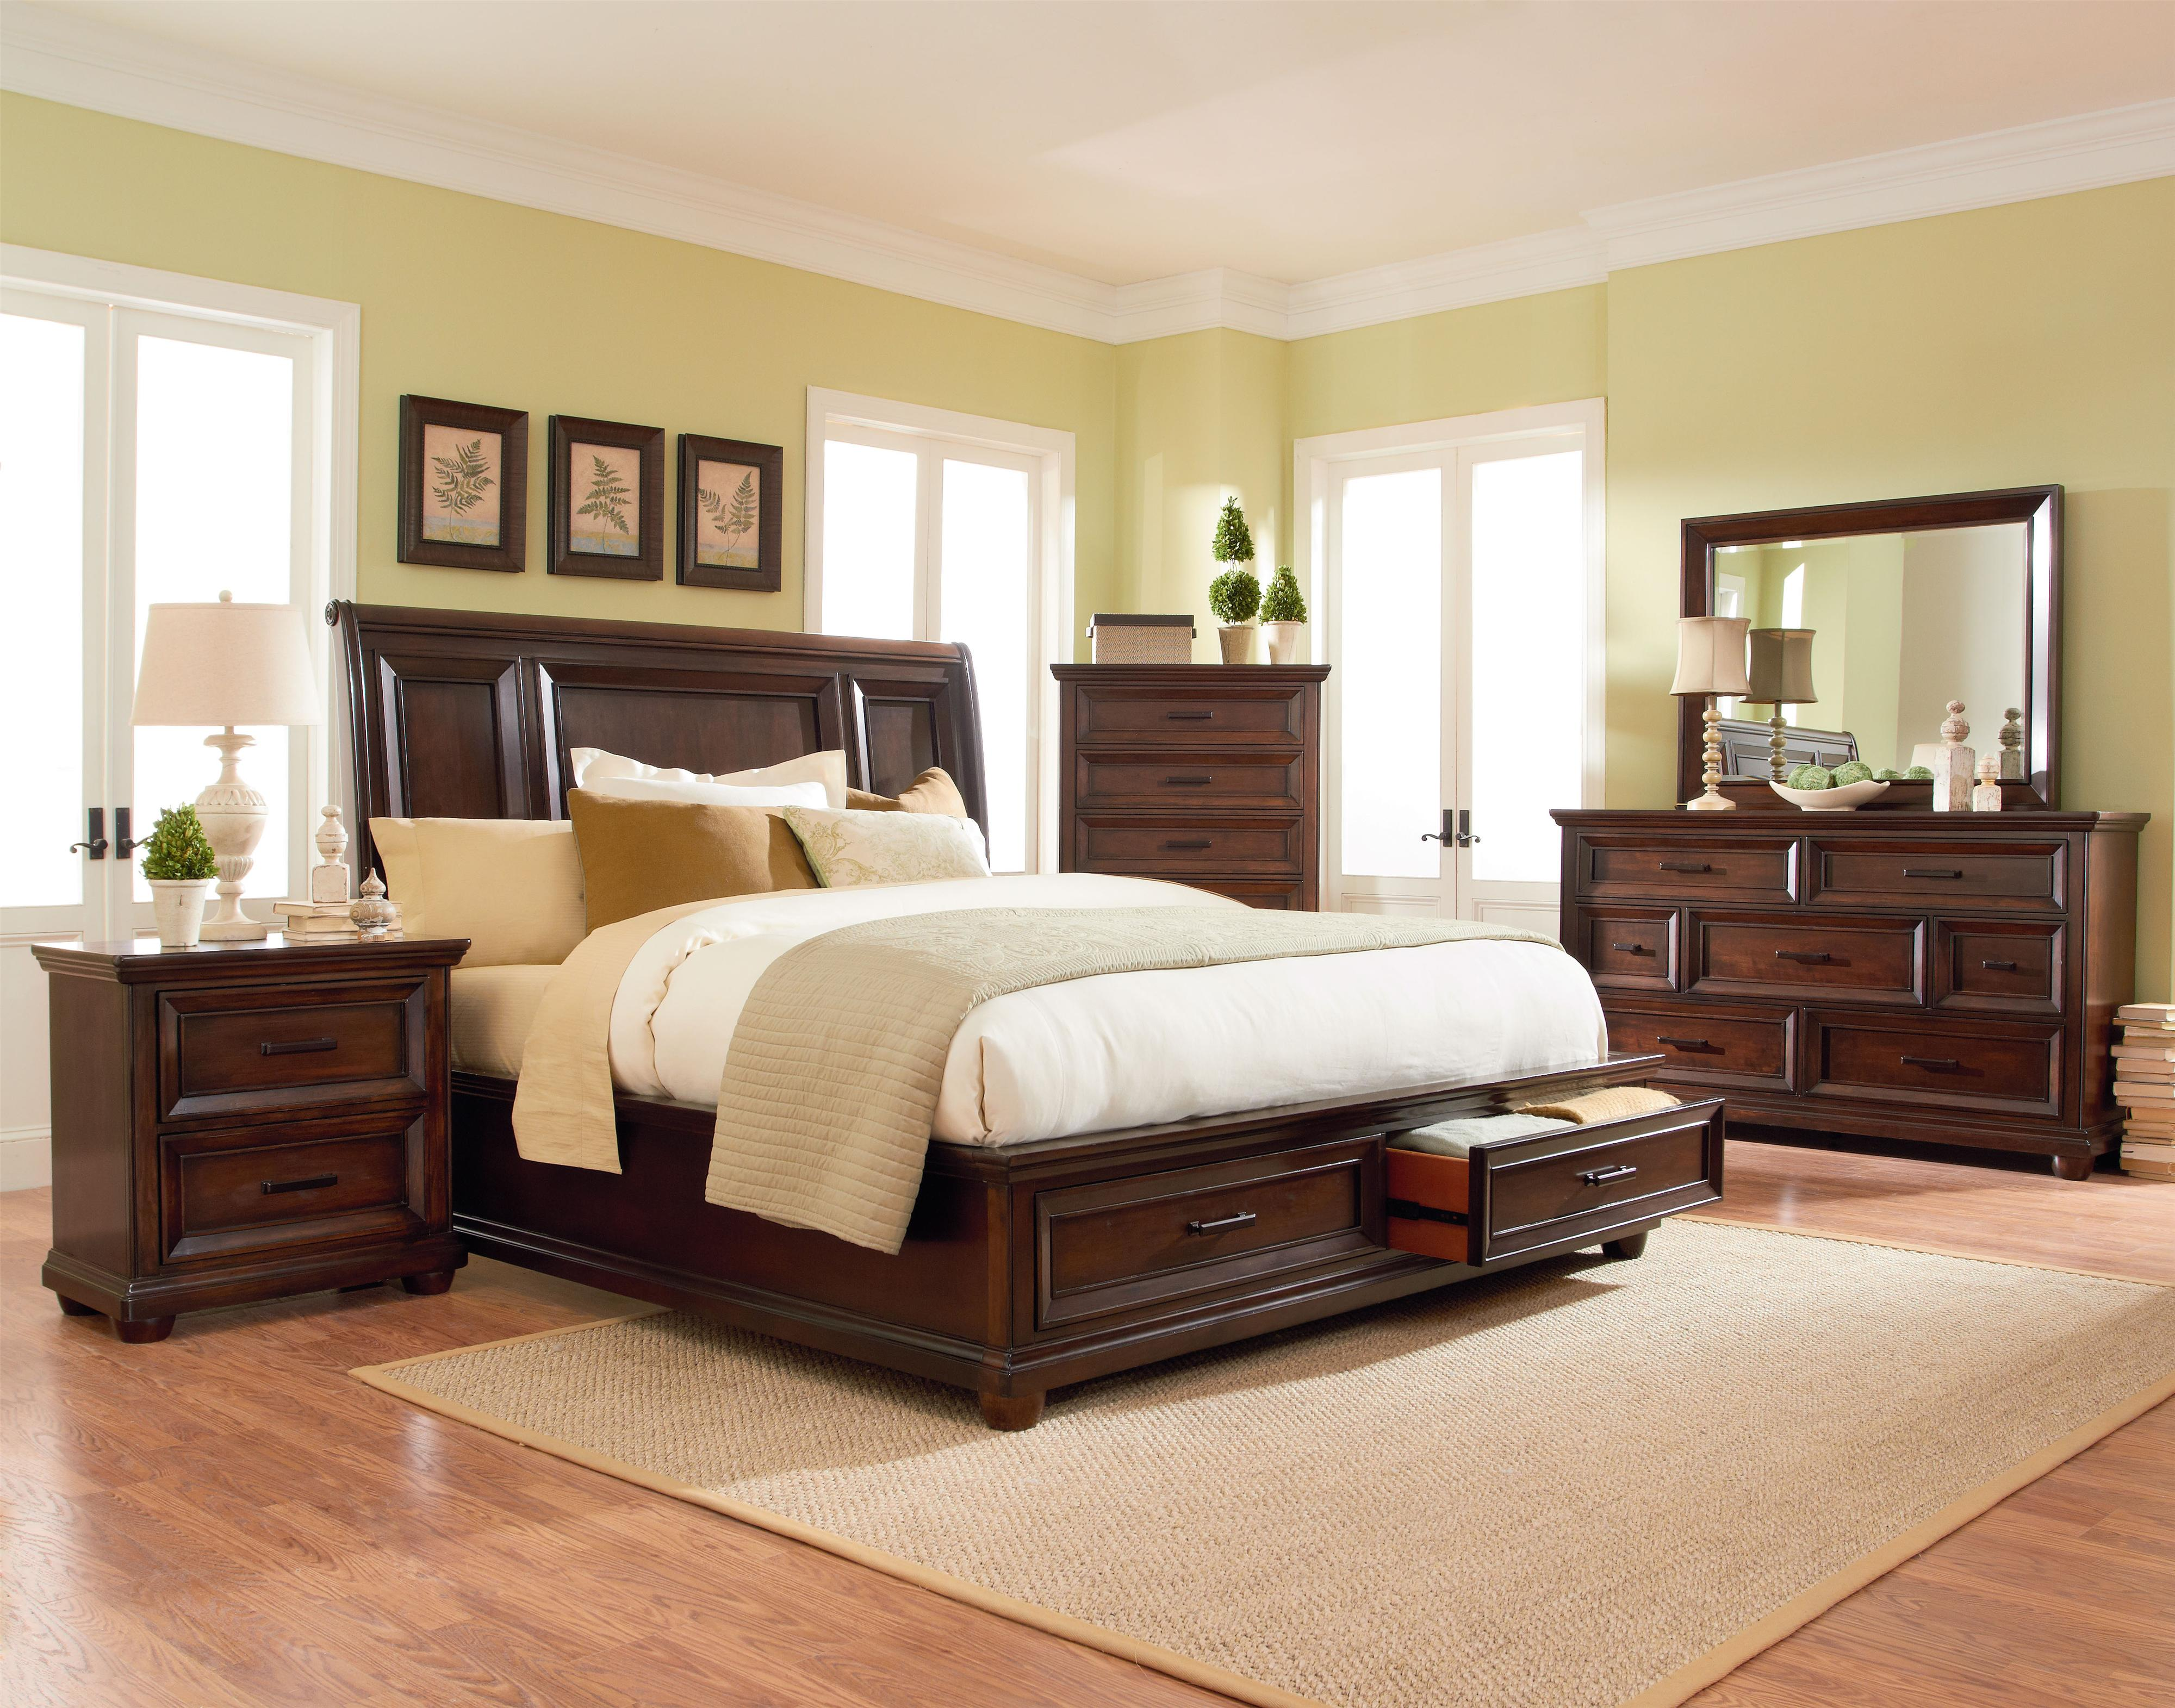 Standard Furniture Vineyard Queen Bedroom Group - Item Number: 877 Queen Bedroom 2